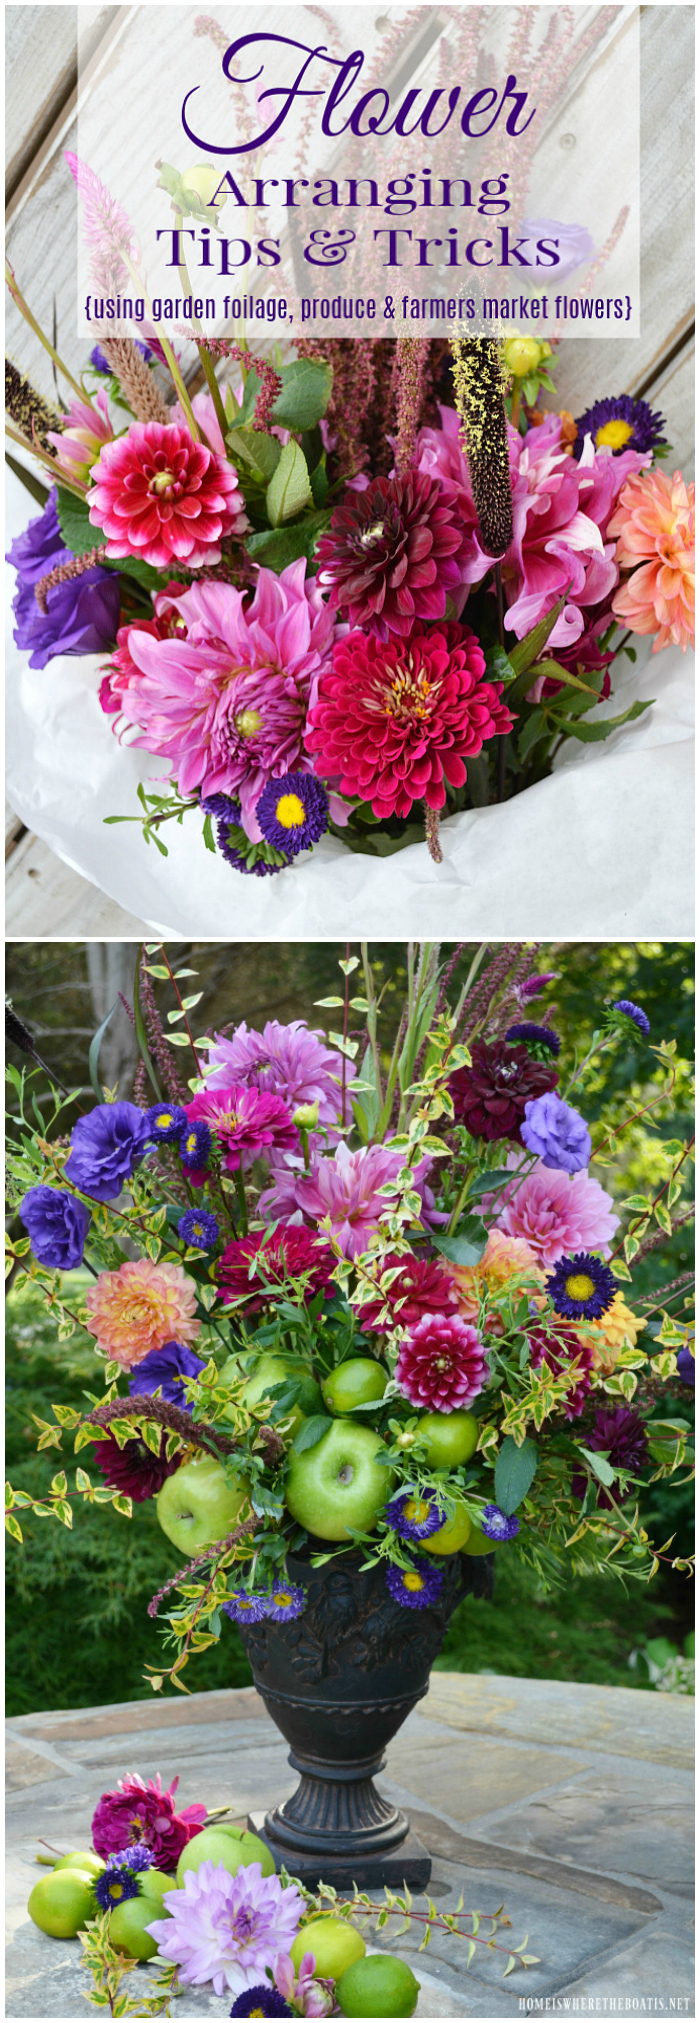 Create a flower arrangement from Farmer's Market flowers, fruit and foliage from your garden with these arranging tips and tricks! | ©homeiswheretheboatis.net #flowerarranging #diy #flowers